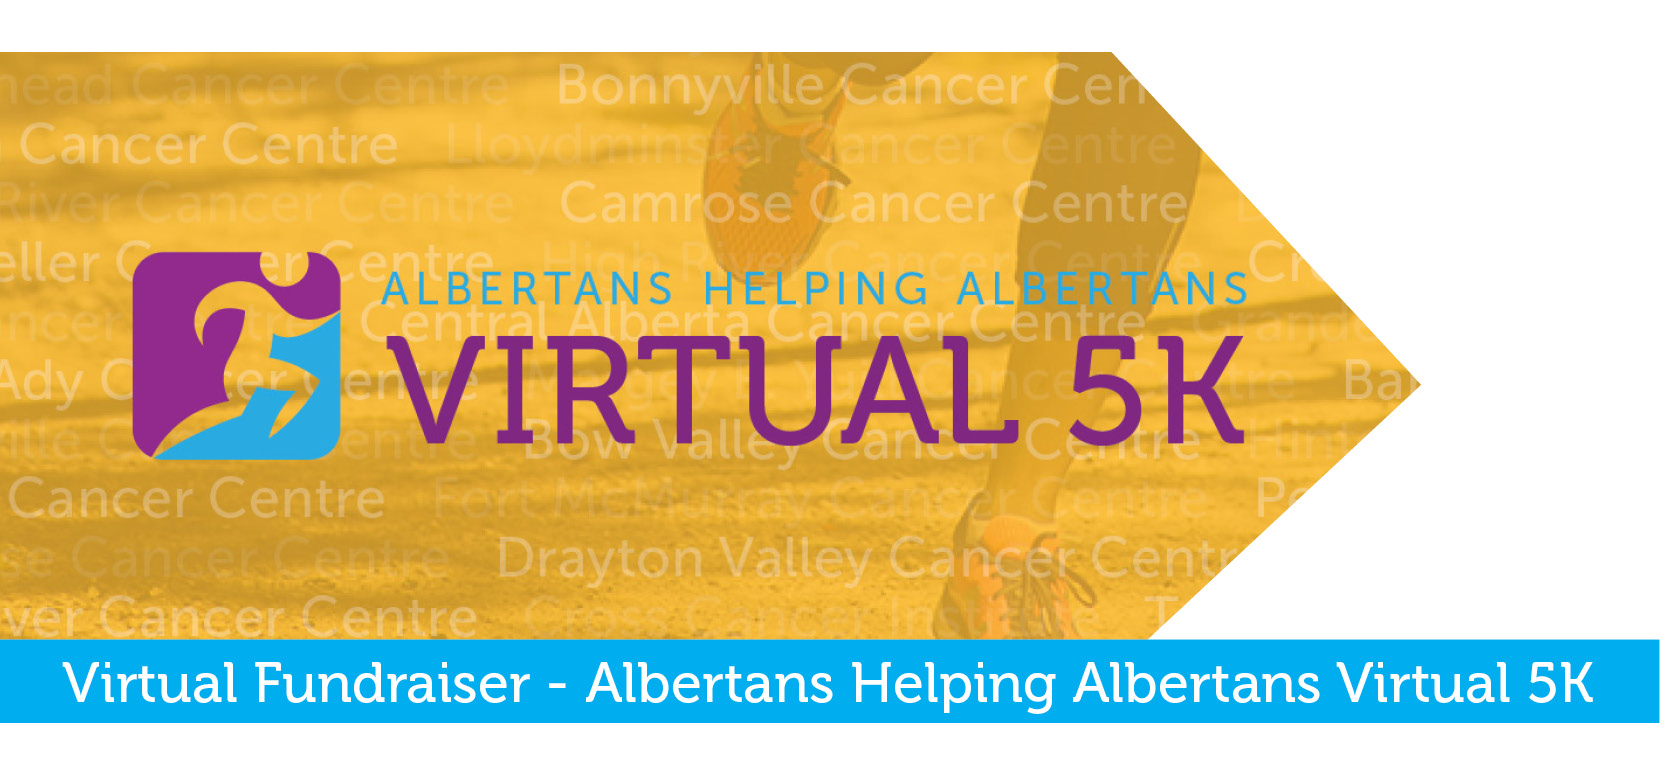 Albertans Helping Albertans Virtual 5k